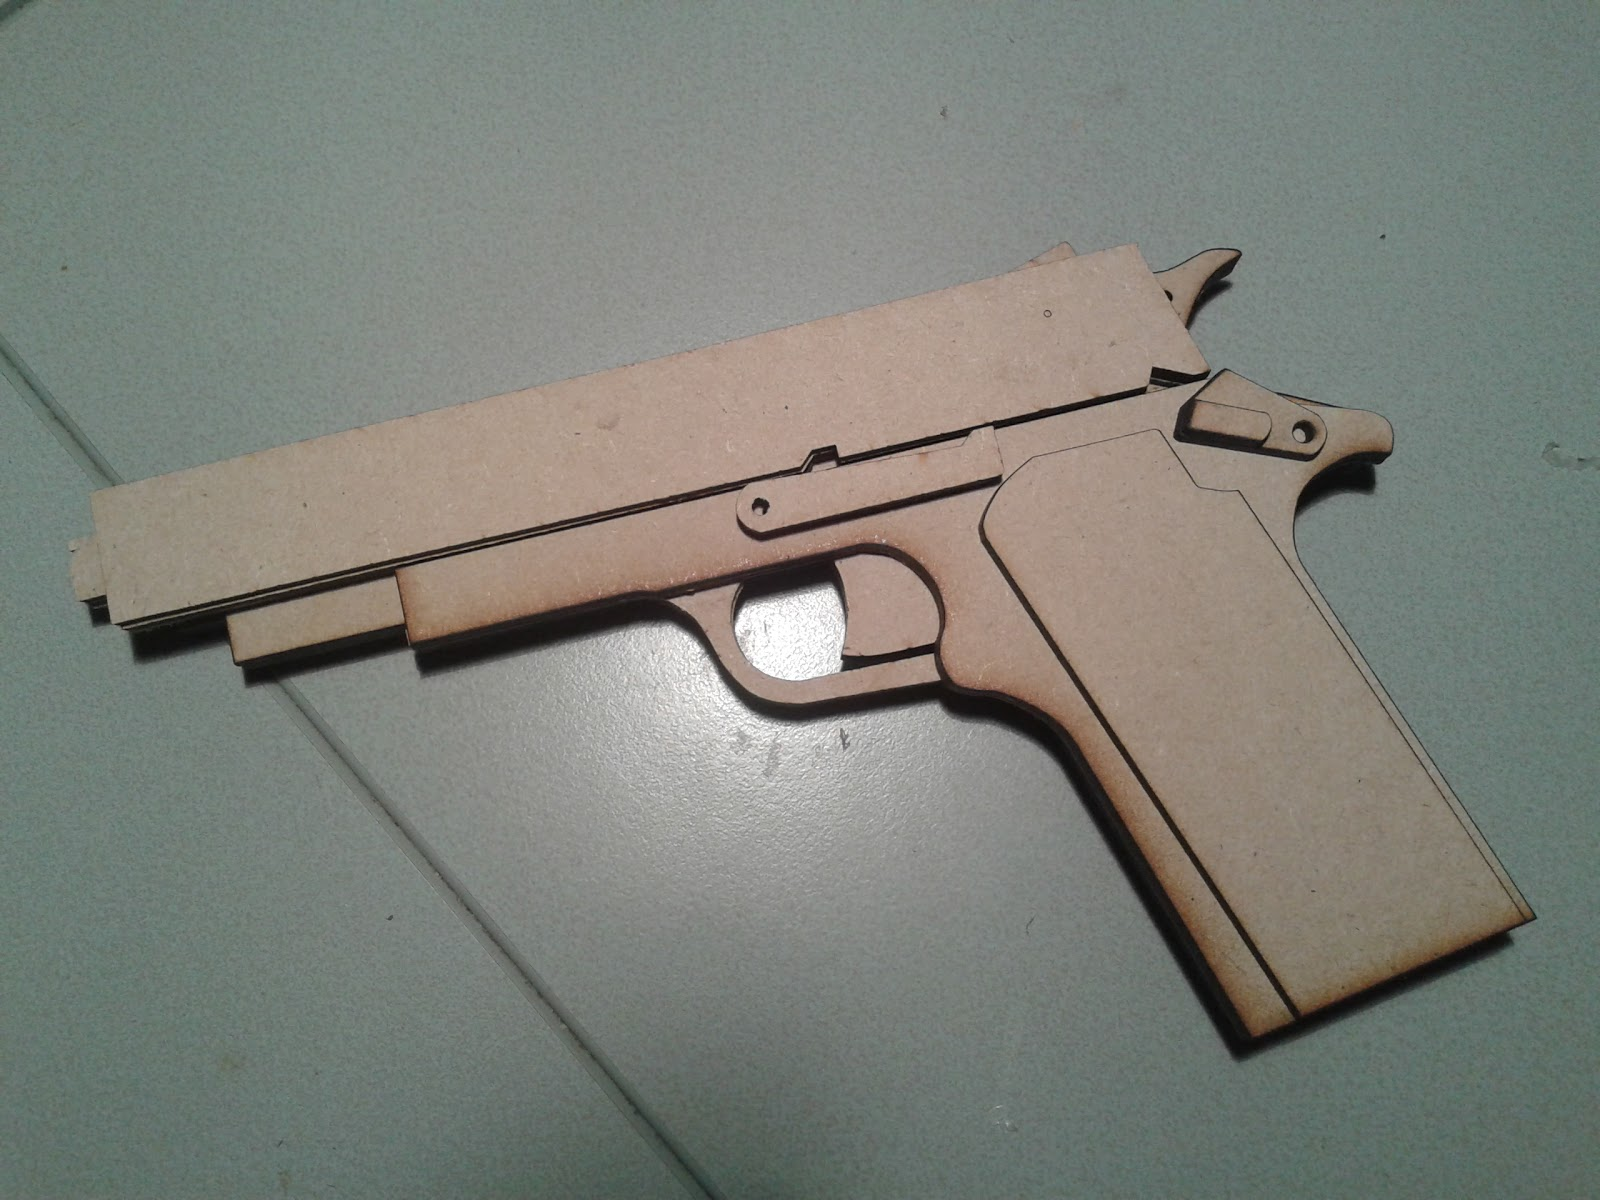 D Printing RC CNC Laser Projects Blowback Rubber Band Gun